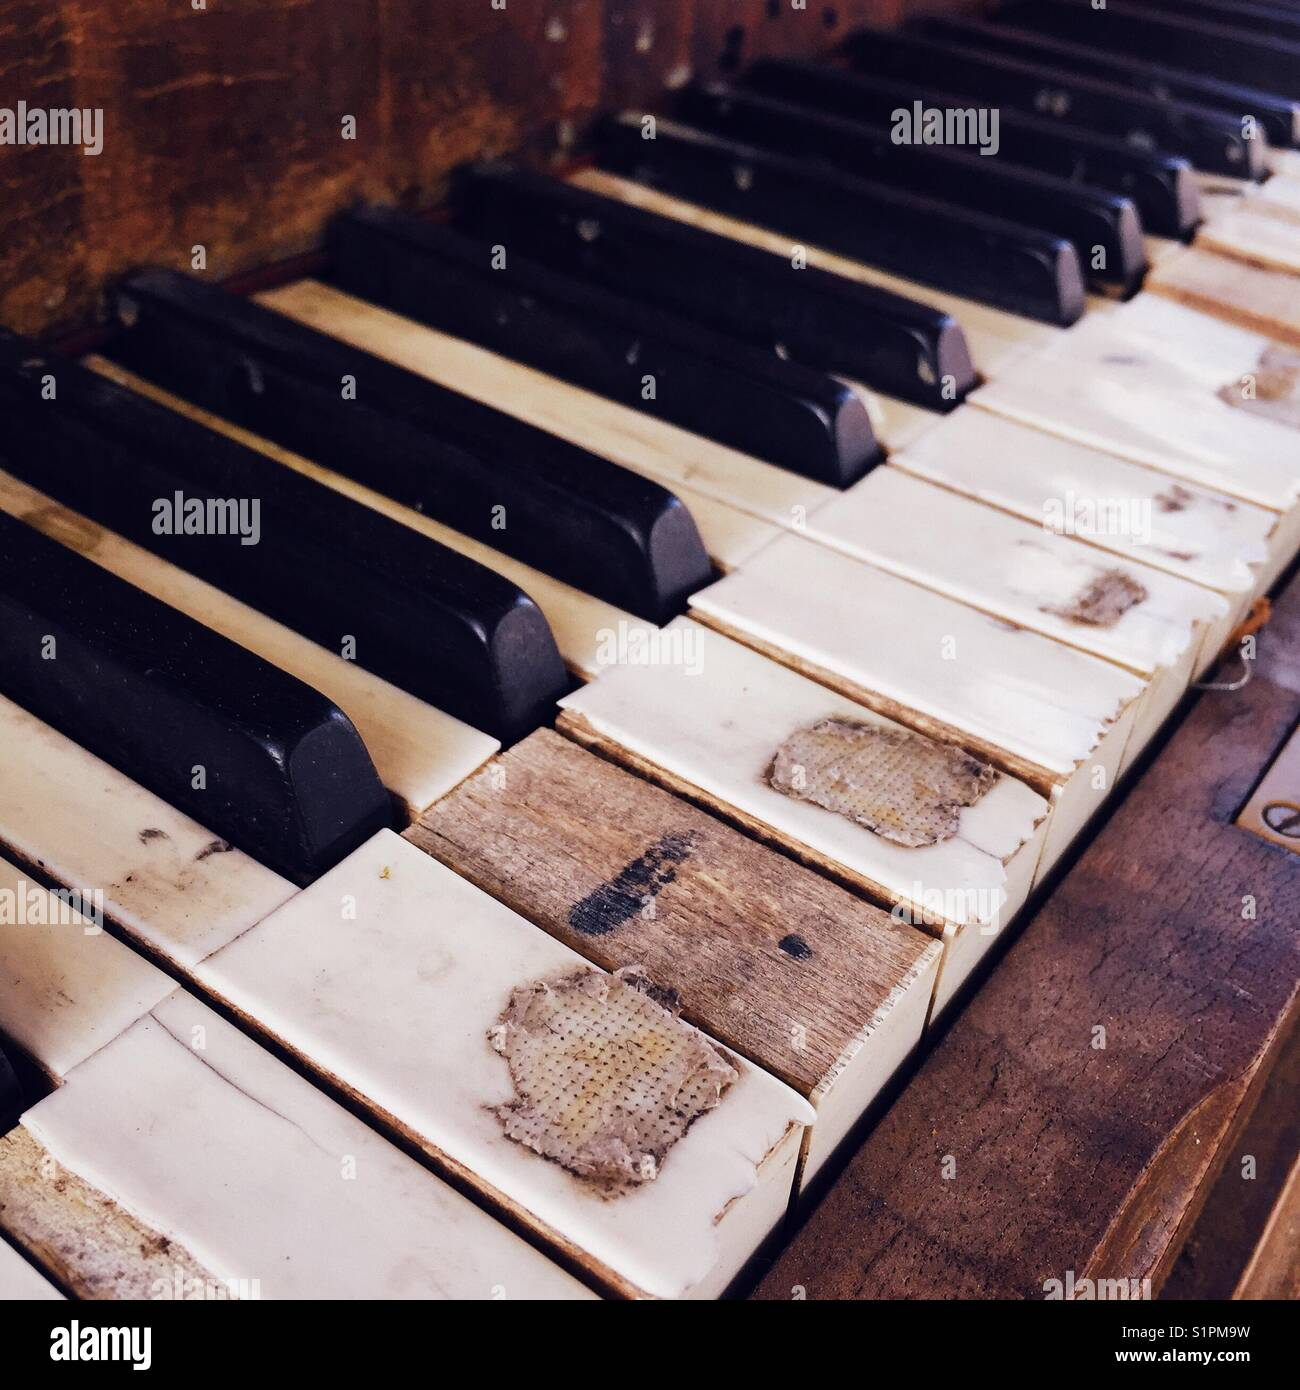 Close up an old worn out piano keys - Stock Image